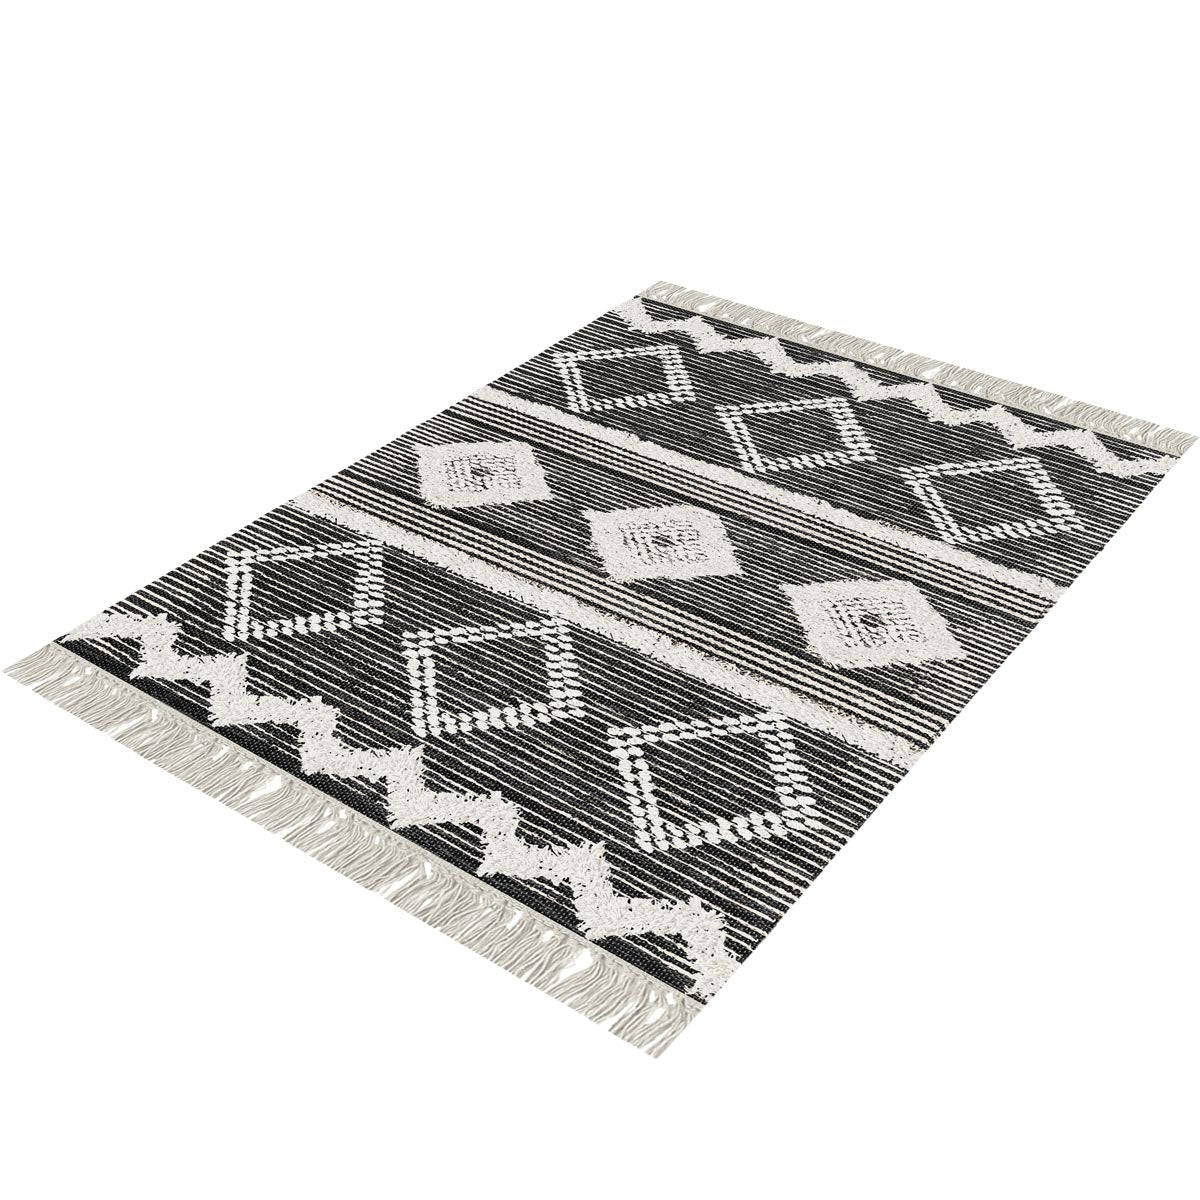 Tangier Rug 12 Black/White 3